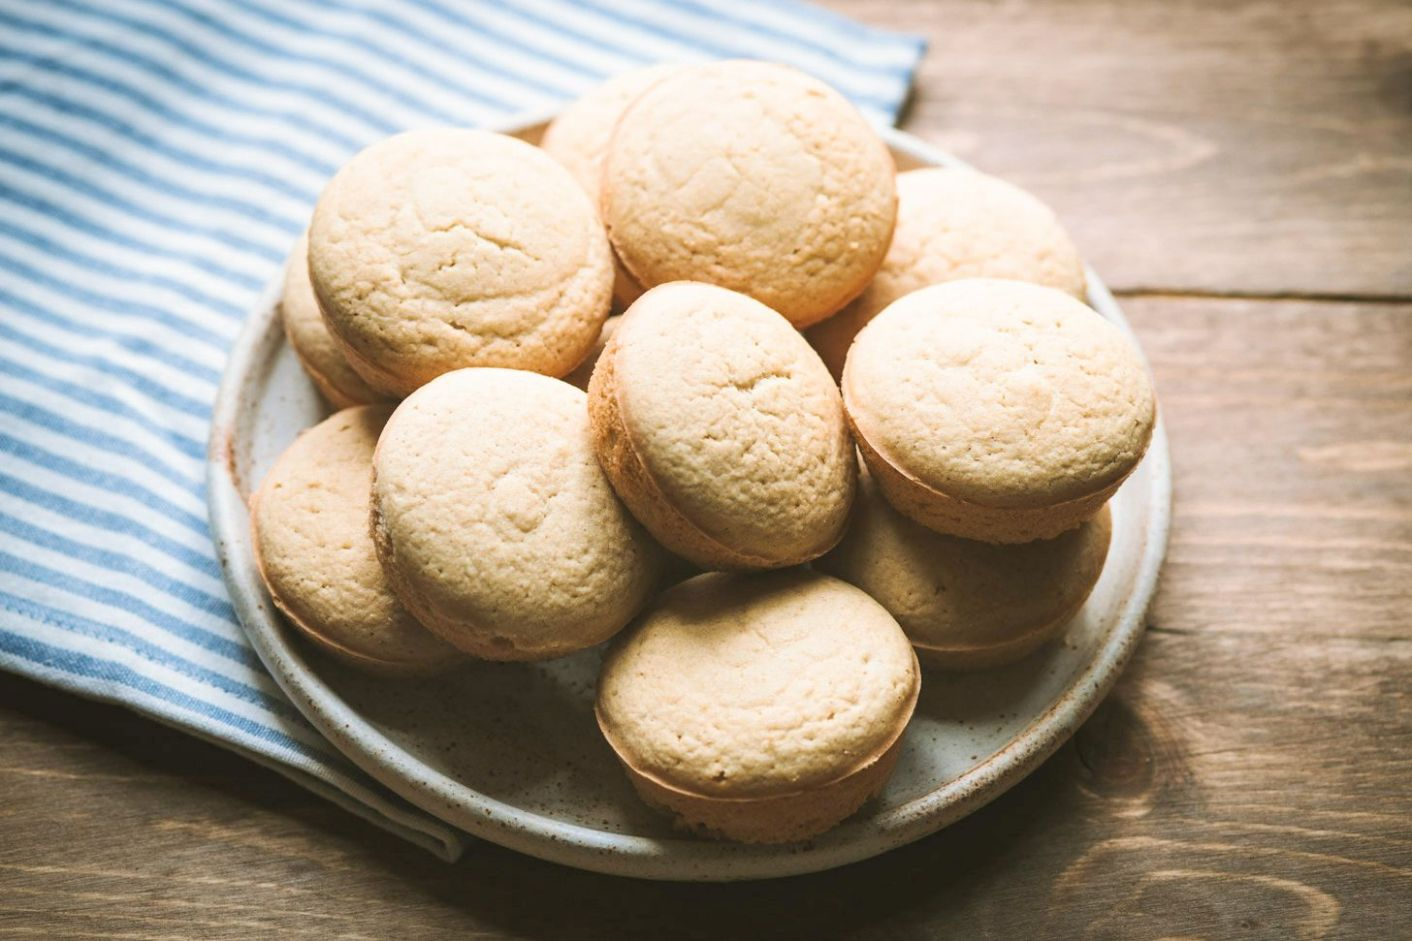 Gluten-Free and Sugar-Free Brown Rice Flour Muffins - Recipes Using Rice Flour For Baking